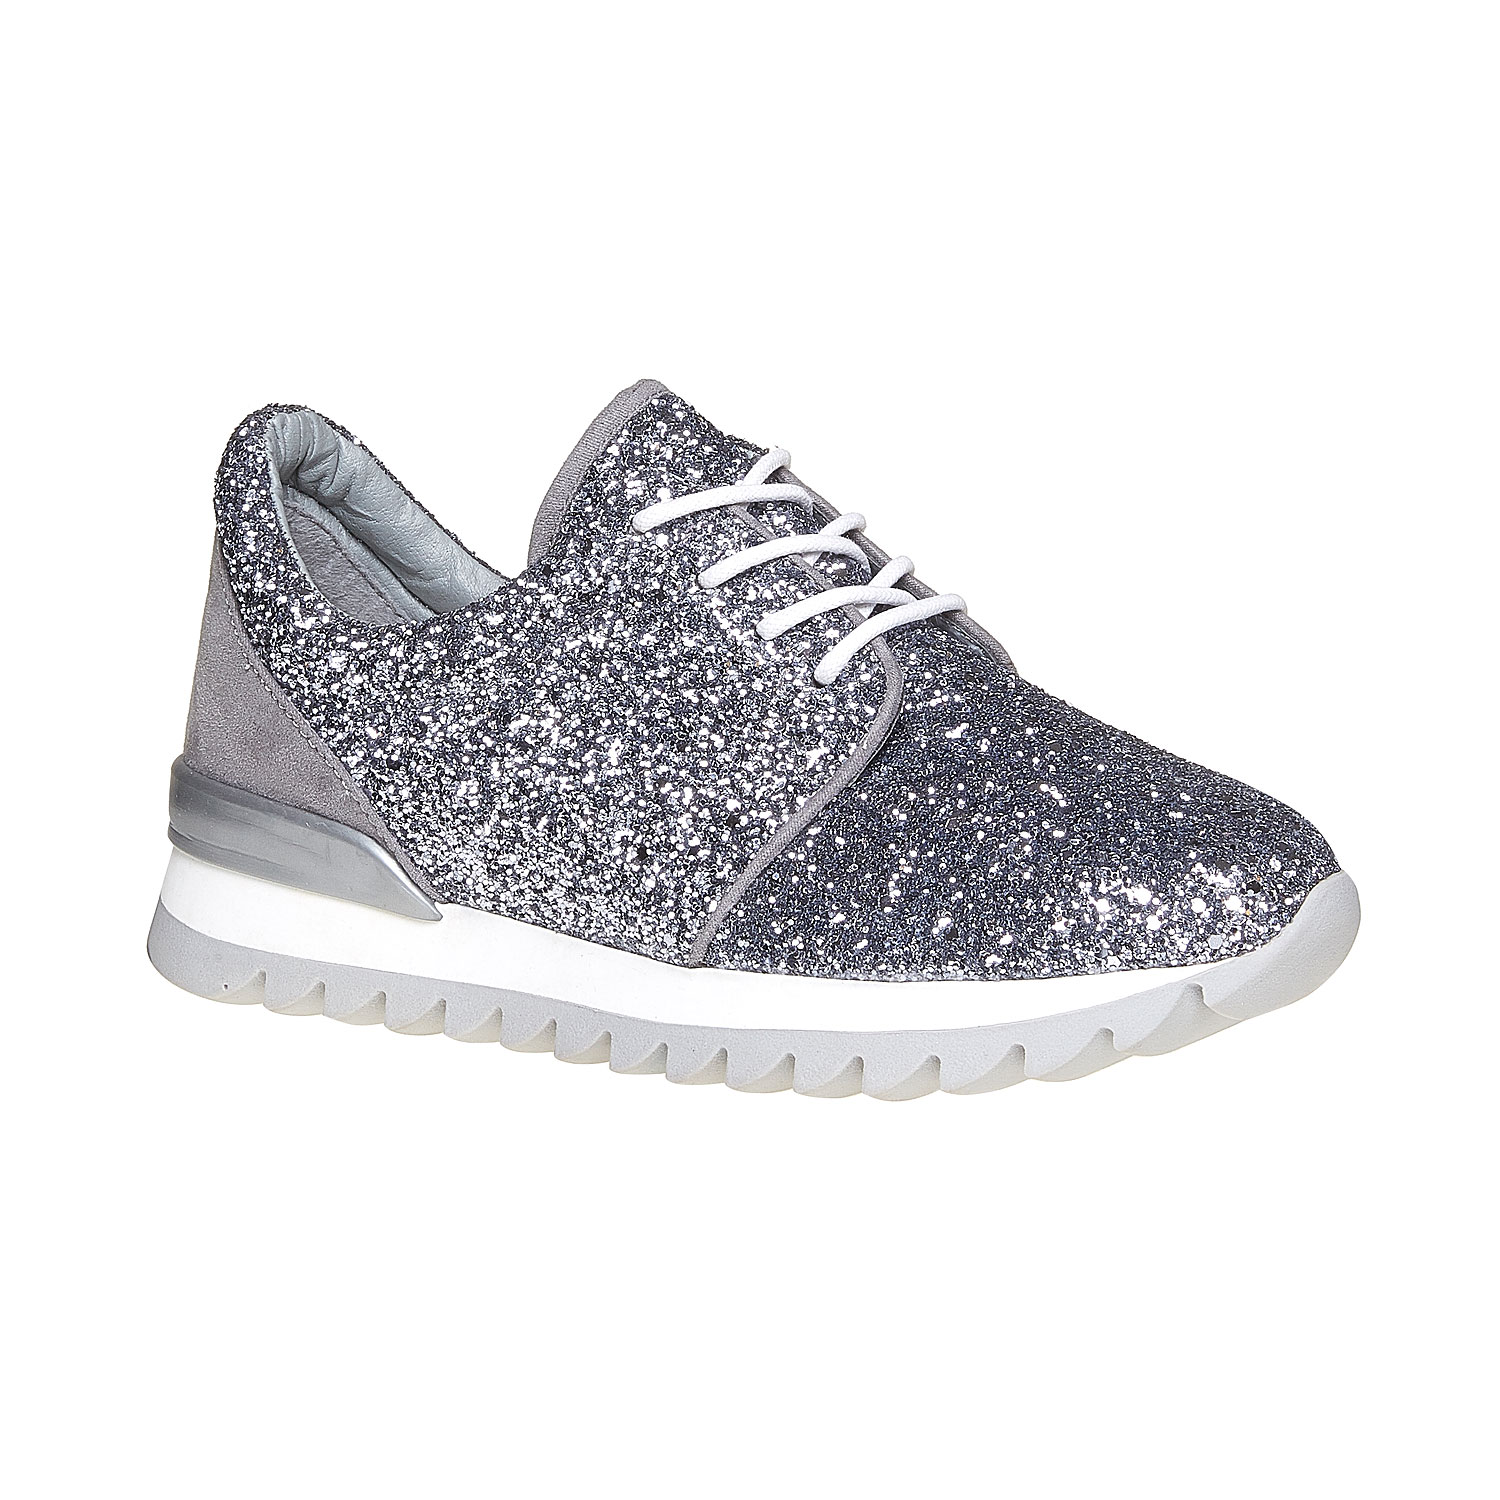 Sneakers argentate per donna North star 3zWXuOoe